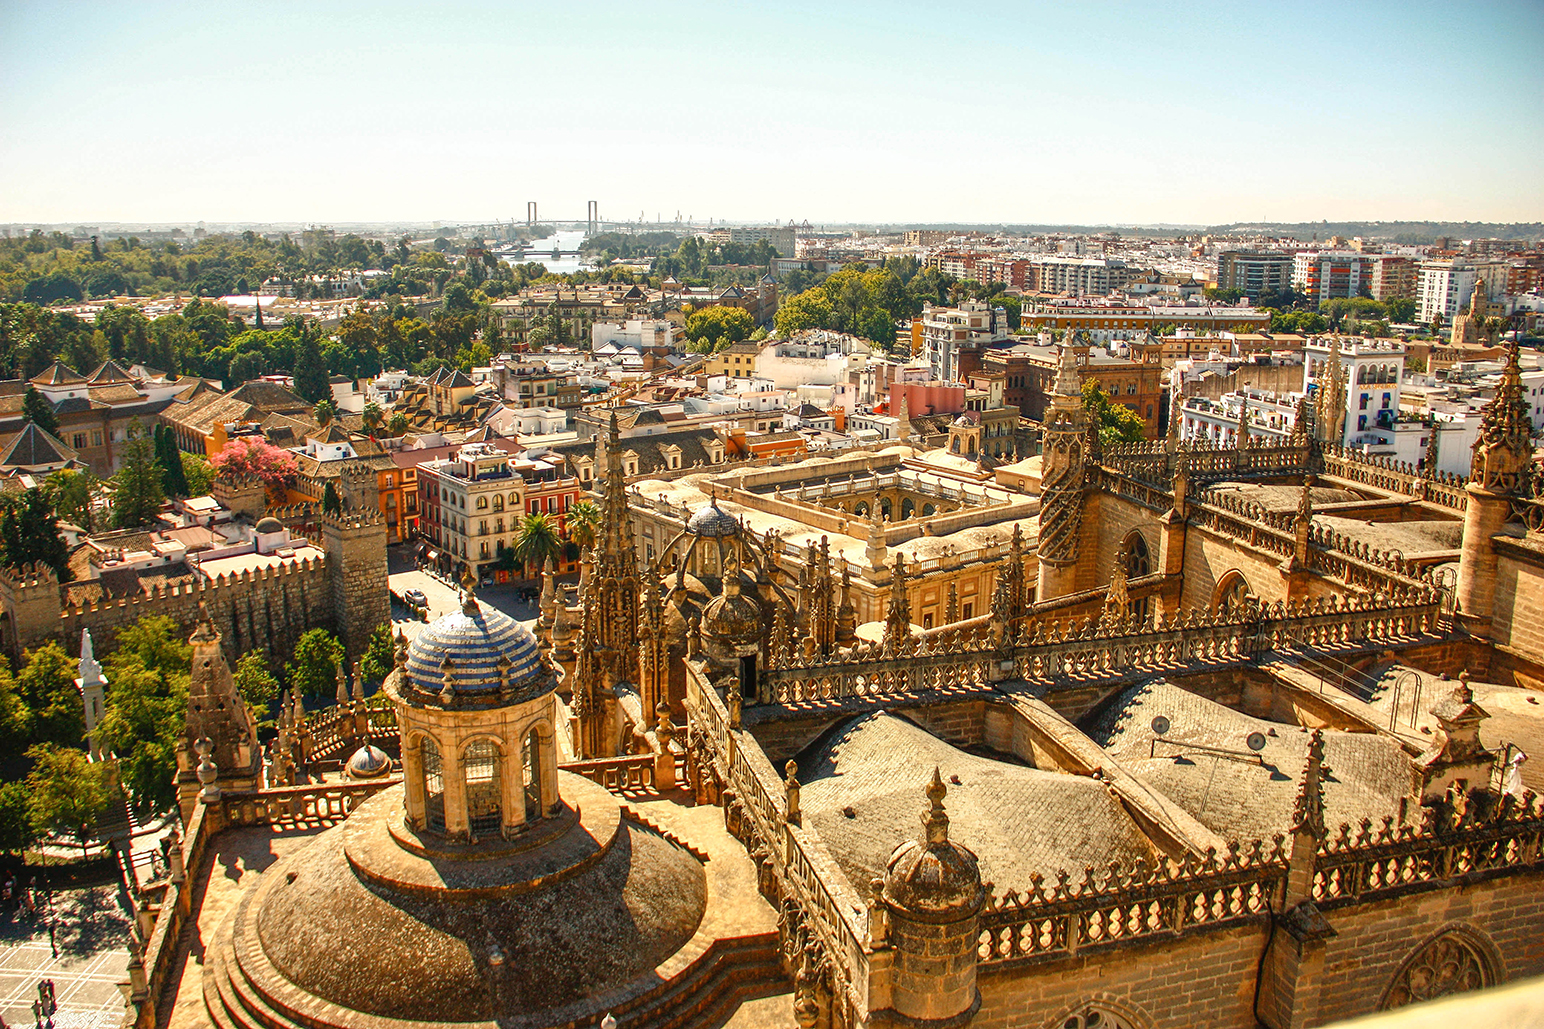 9 Days. Escorted Tour: Barcelona + Andalusia with Costa Del Sol and Toledo